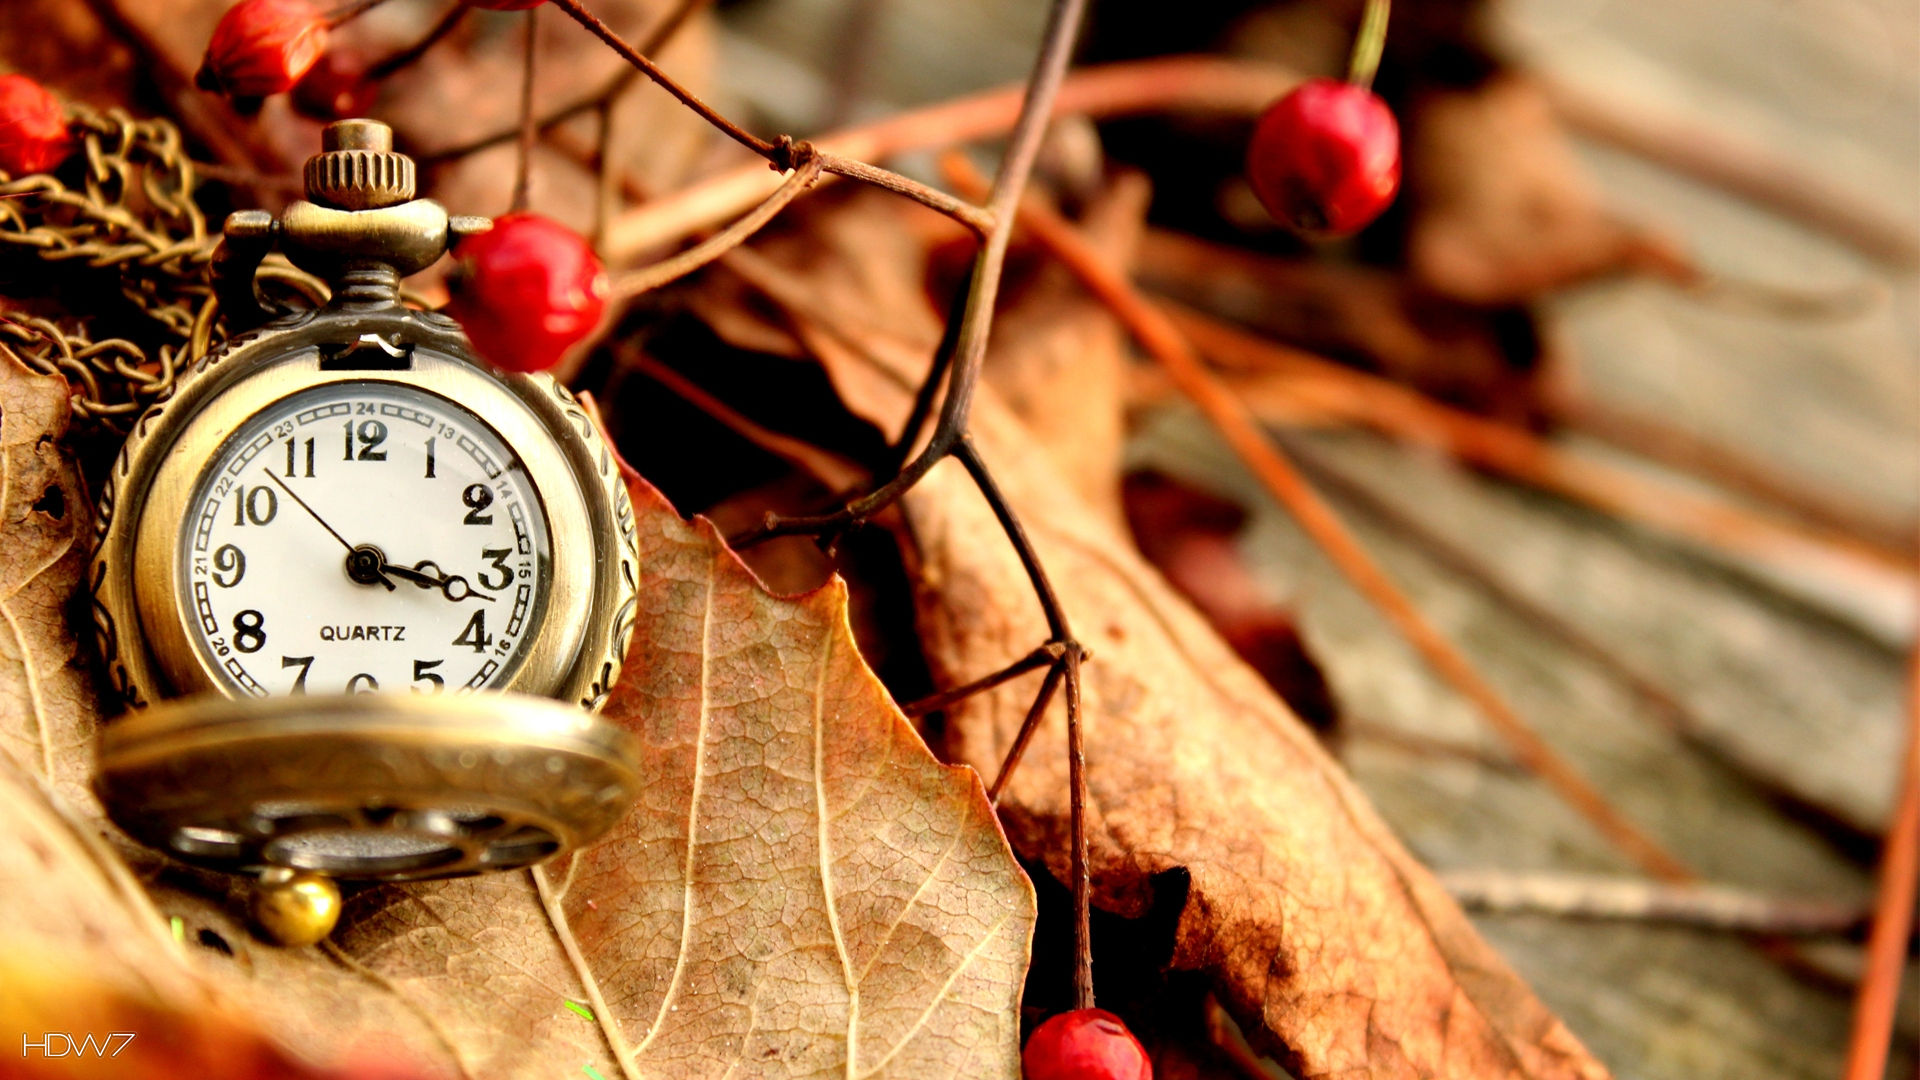 beautiful vintage watch hd 1080p wallpapers download | hd wallpaper